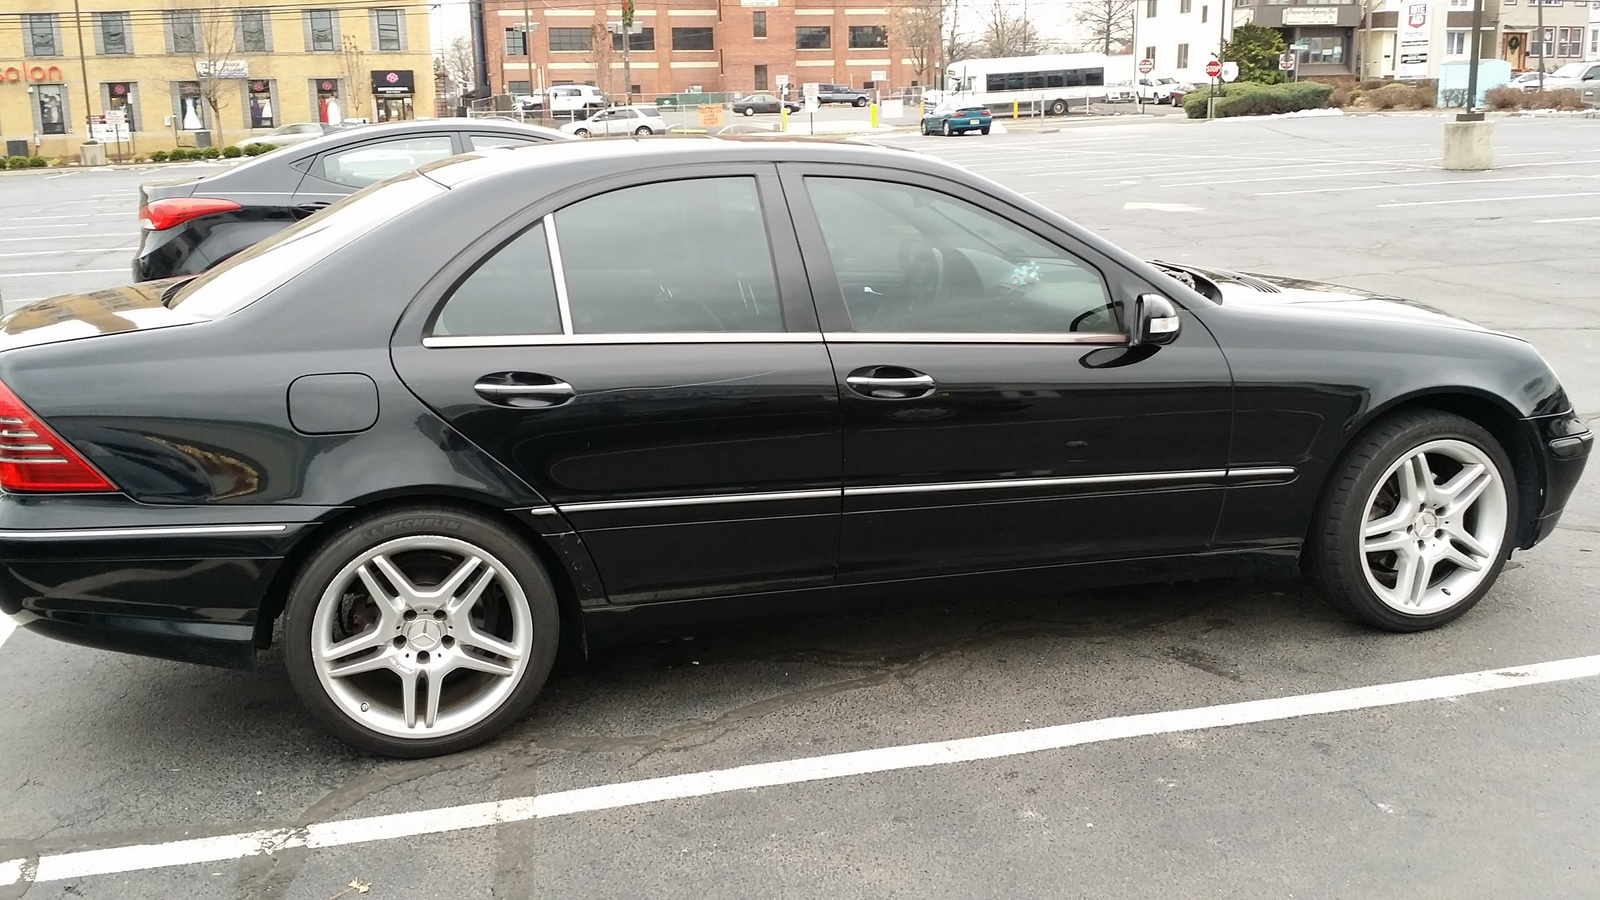 Picture of 2003 mercedes benz c class 4 dr c320 sedan for Mercedes benz e class 2003 price